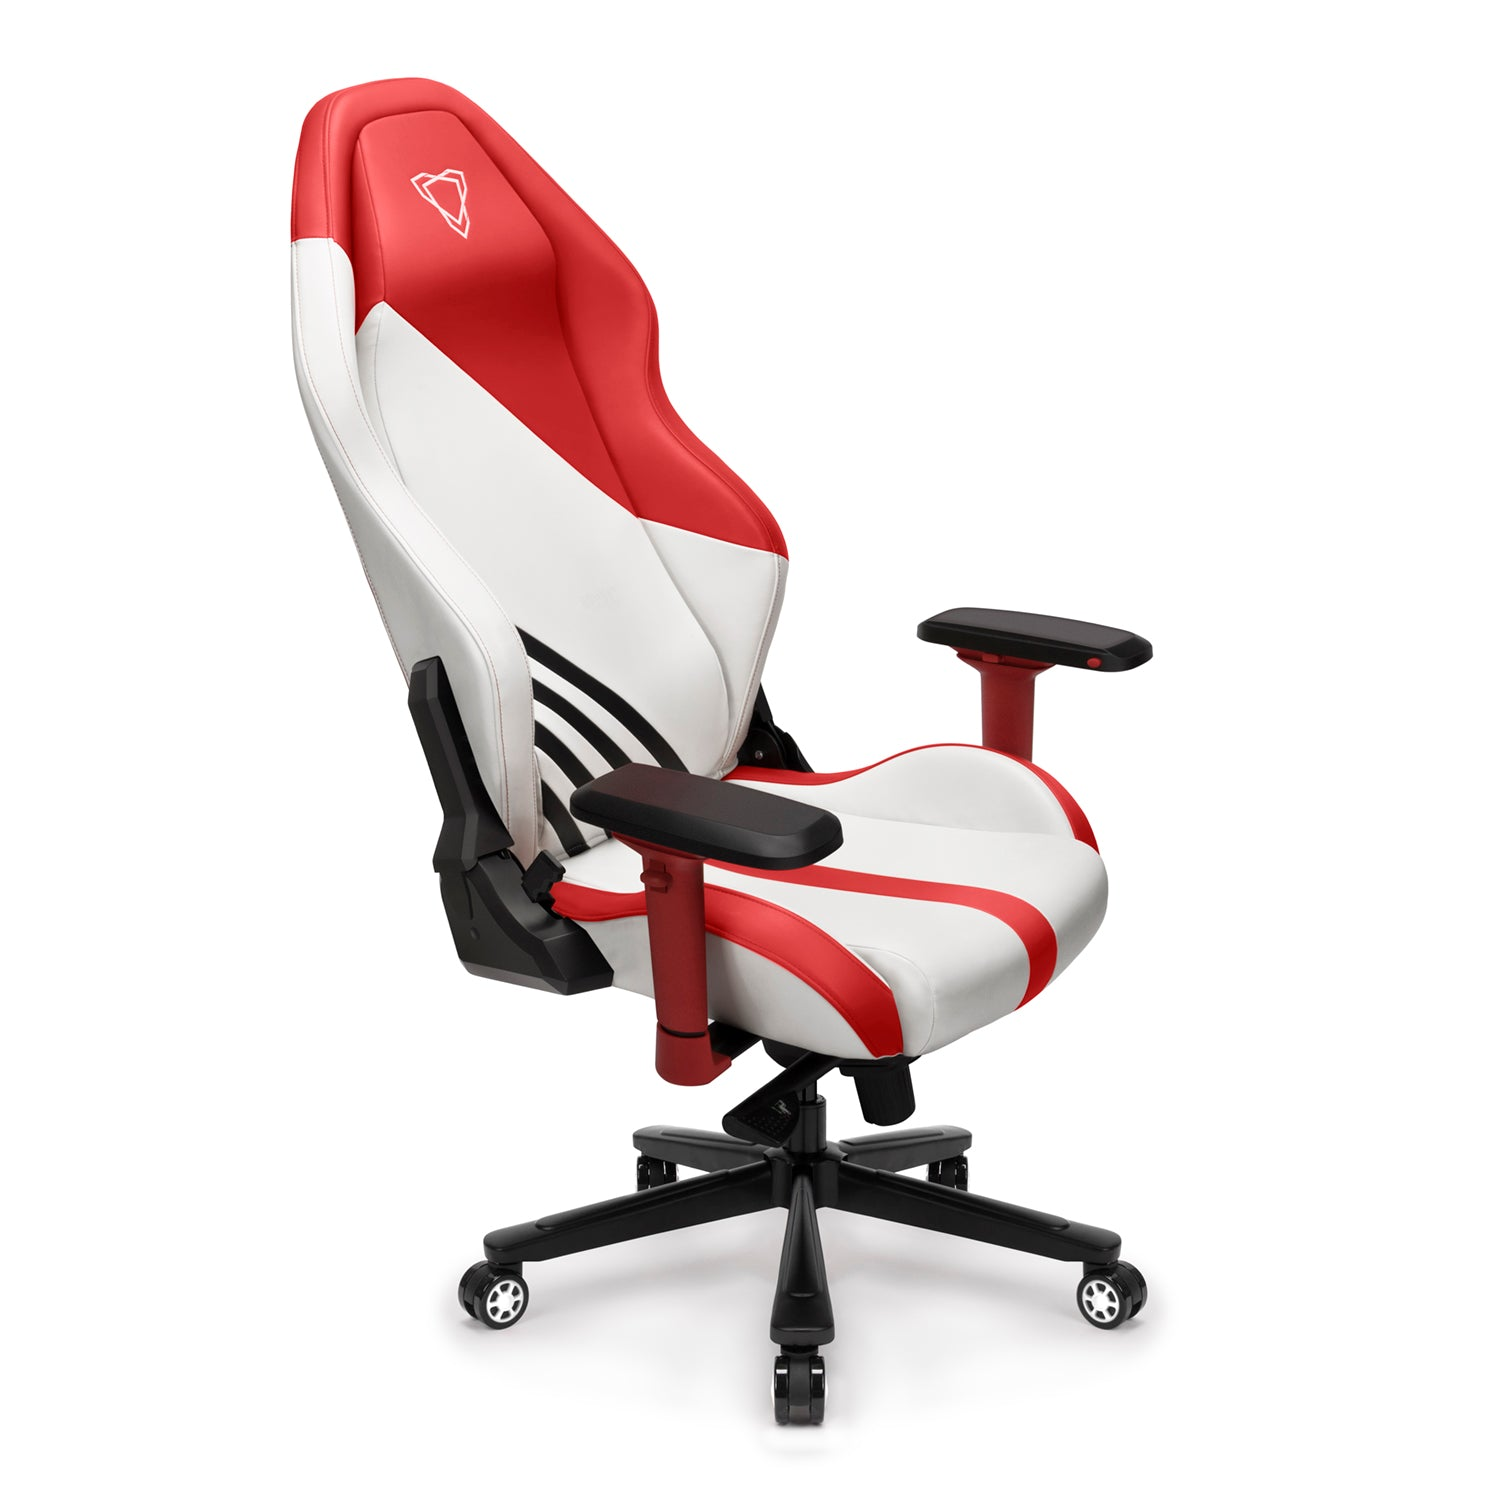 Furgle WCG Gaming Chair Safe&Durable Office Chair Boss chair LootDash